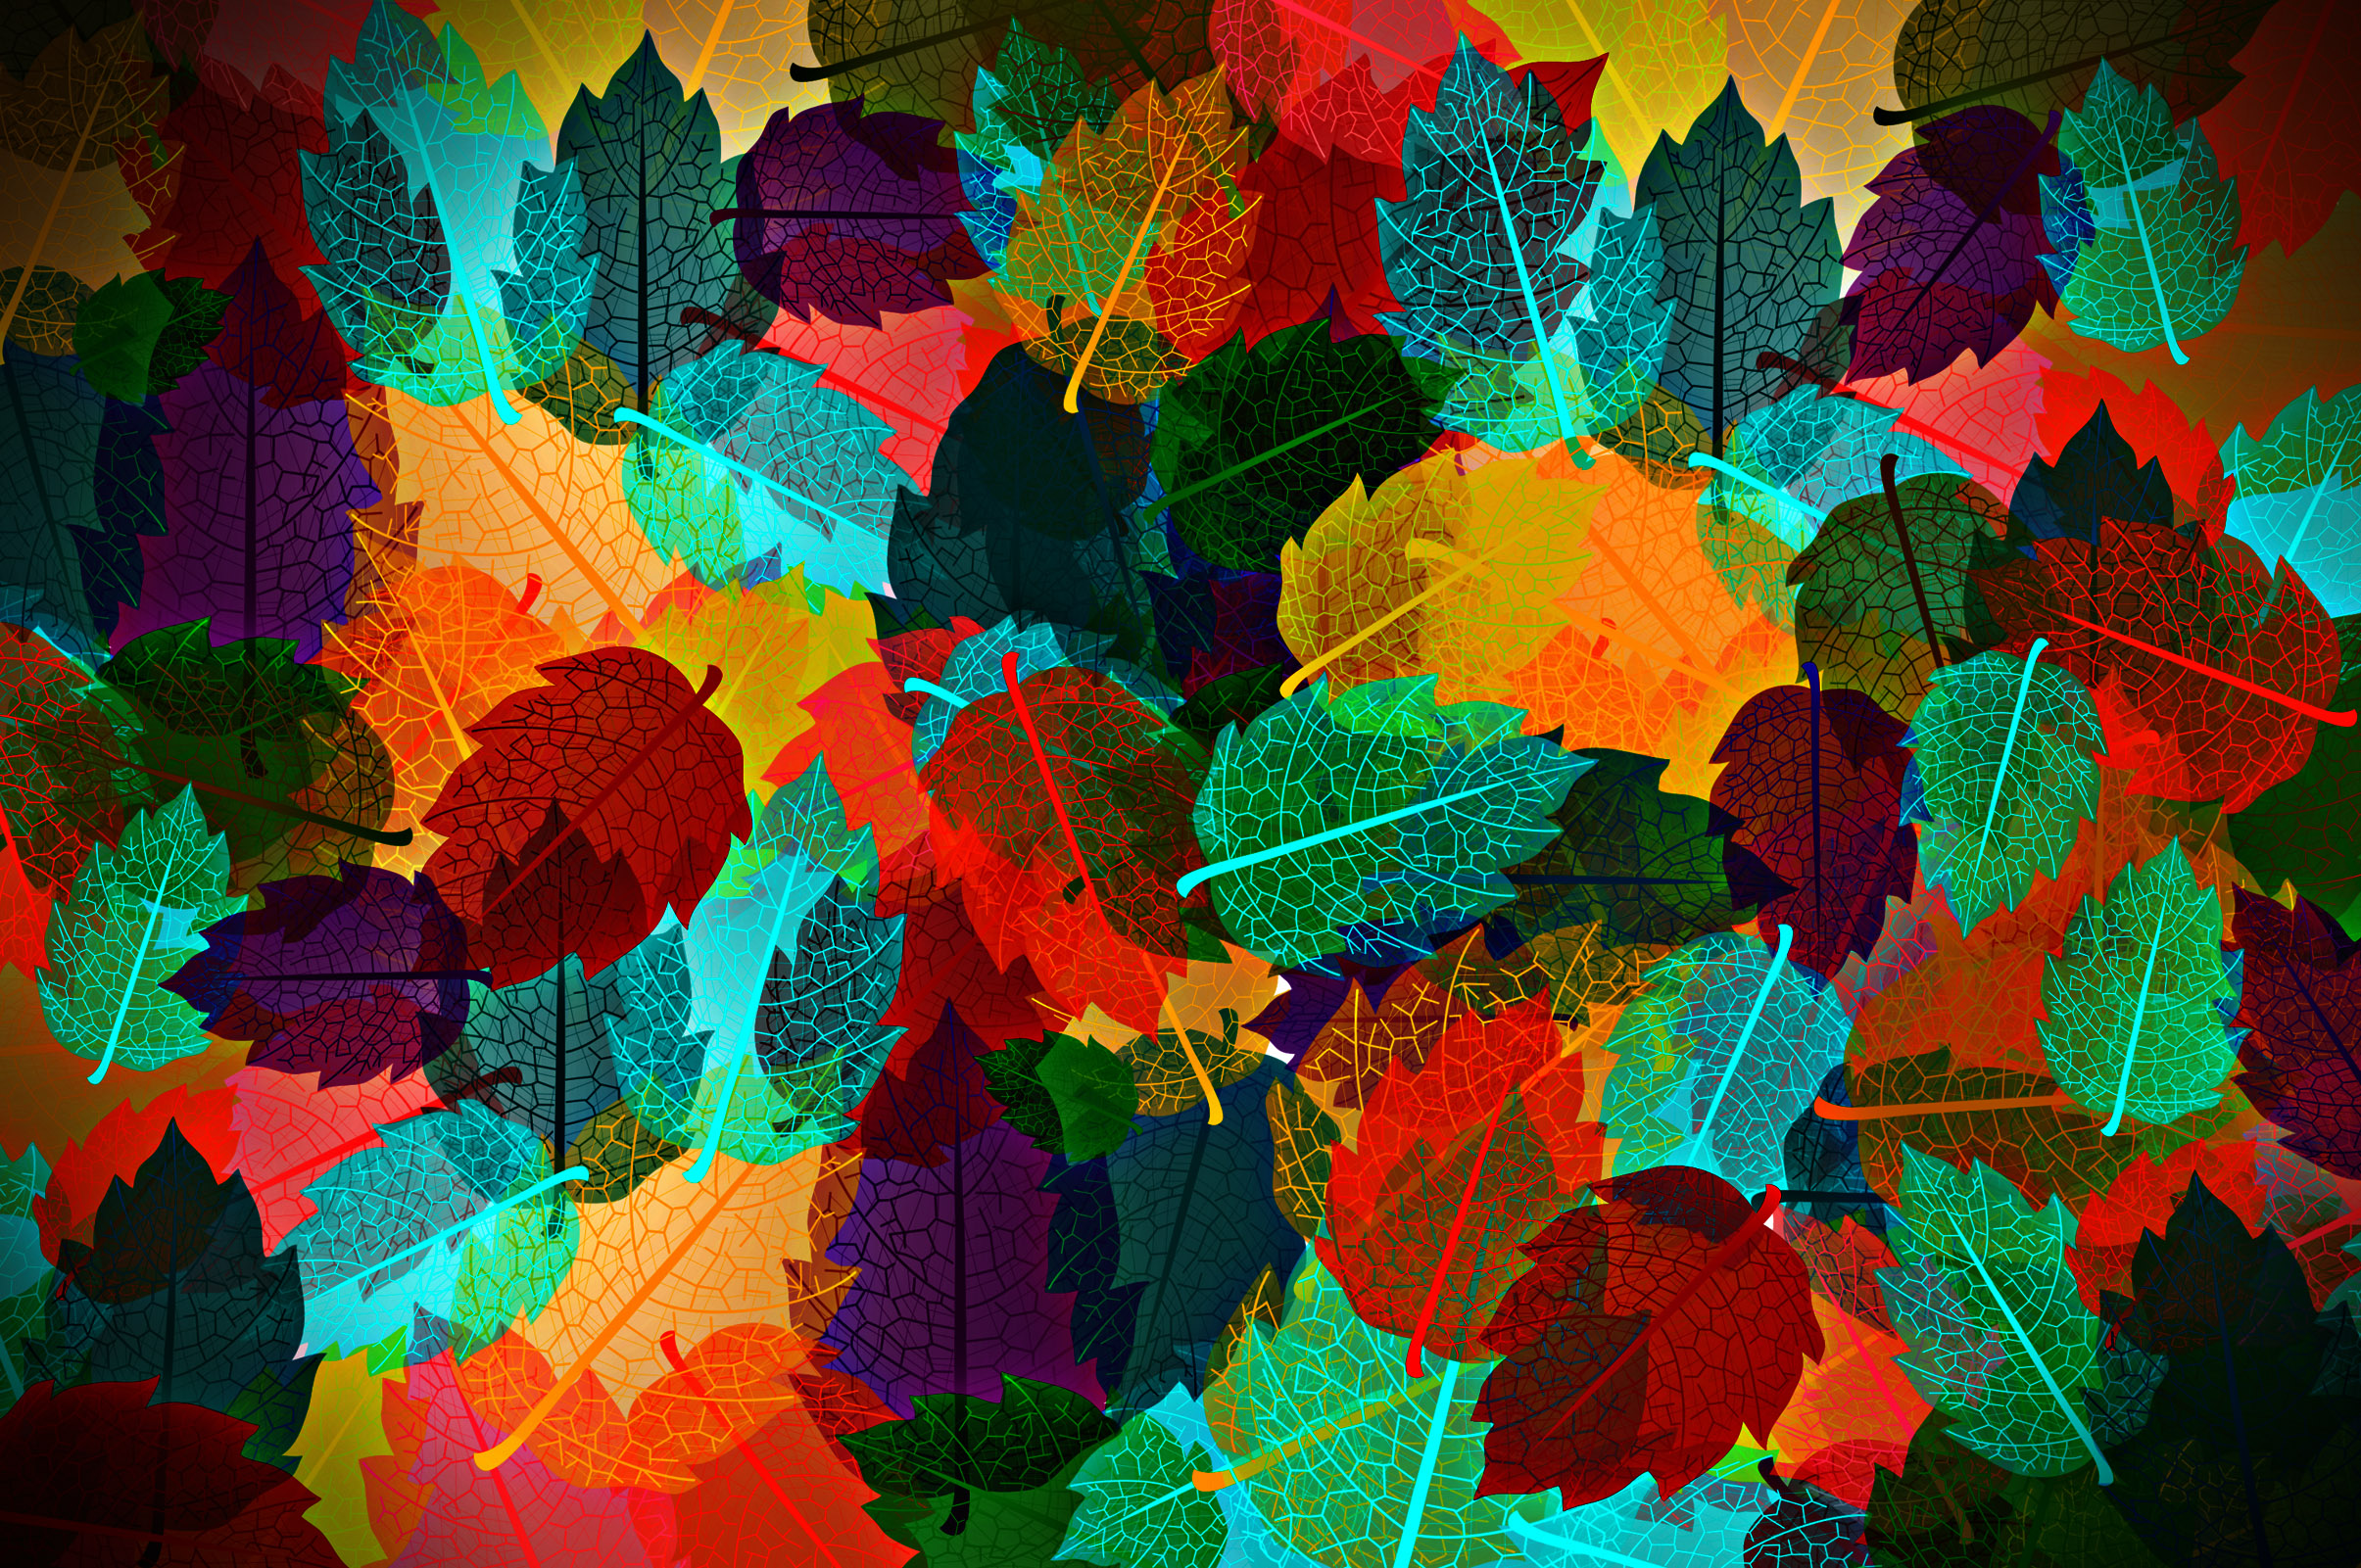 Colorful autumn leaves pattern photo